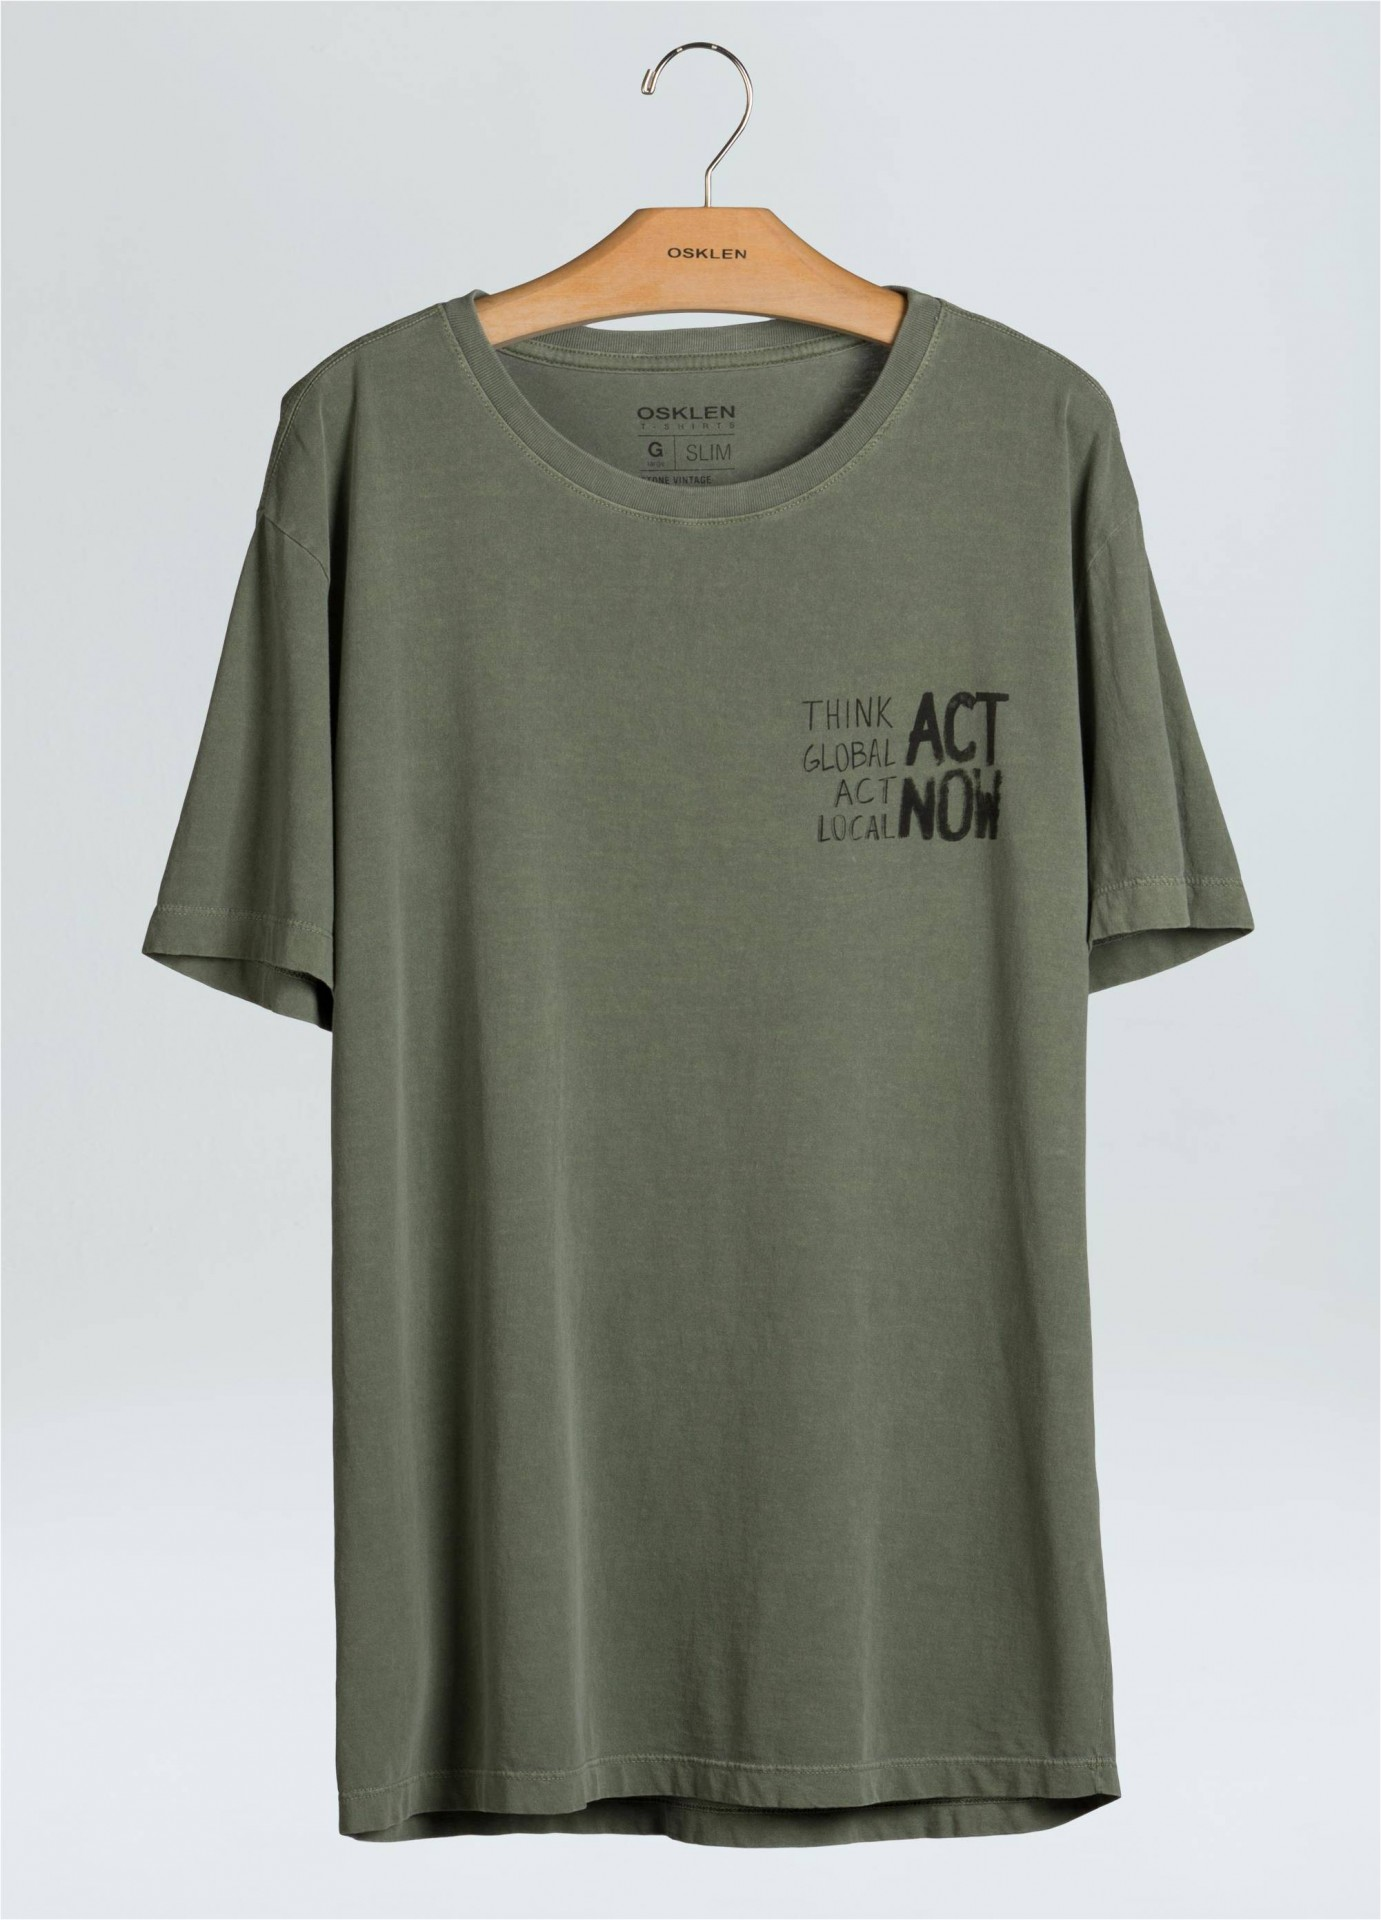 T-SHIRT STONE ACT NOW OSKLEN